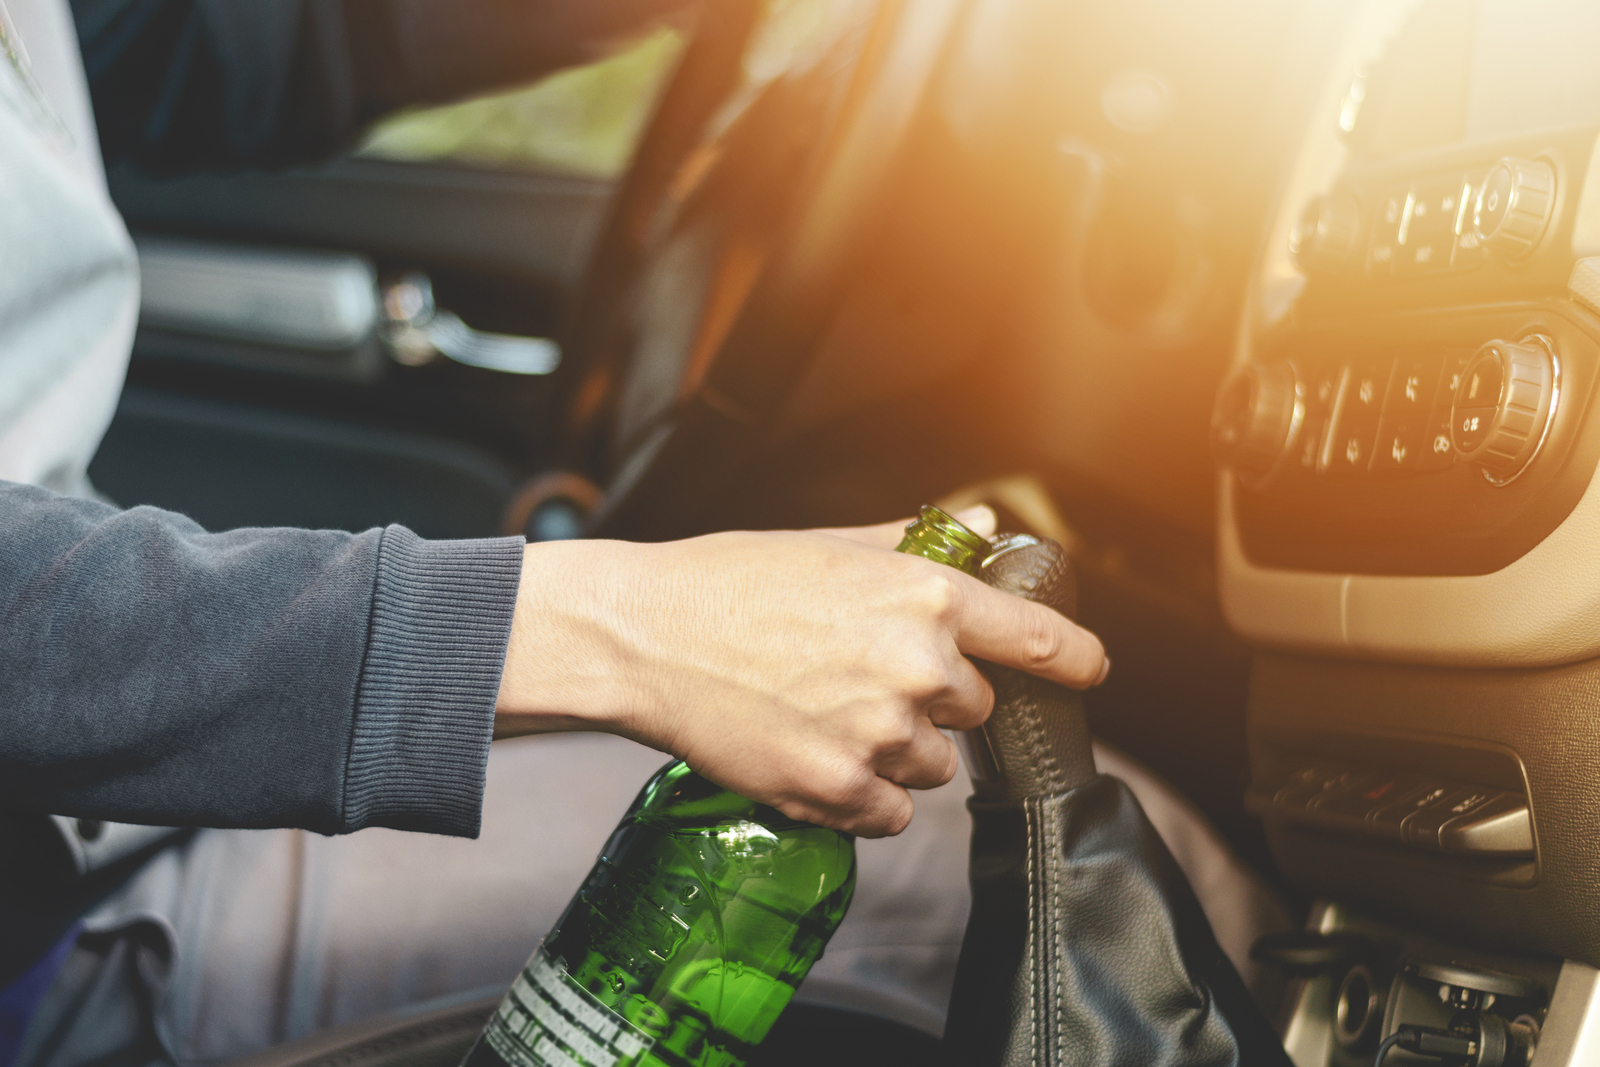 Person drinking and driving